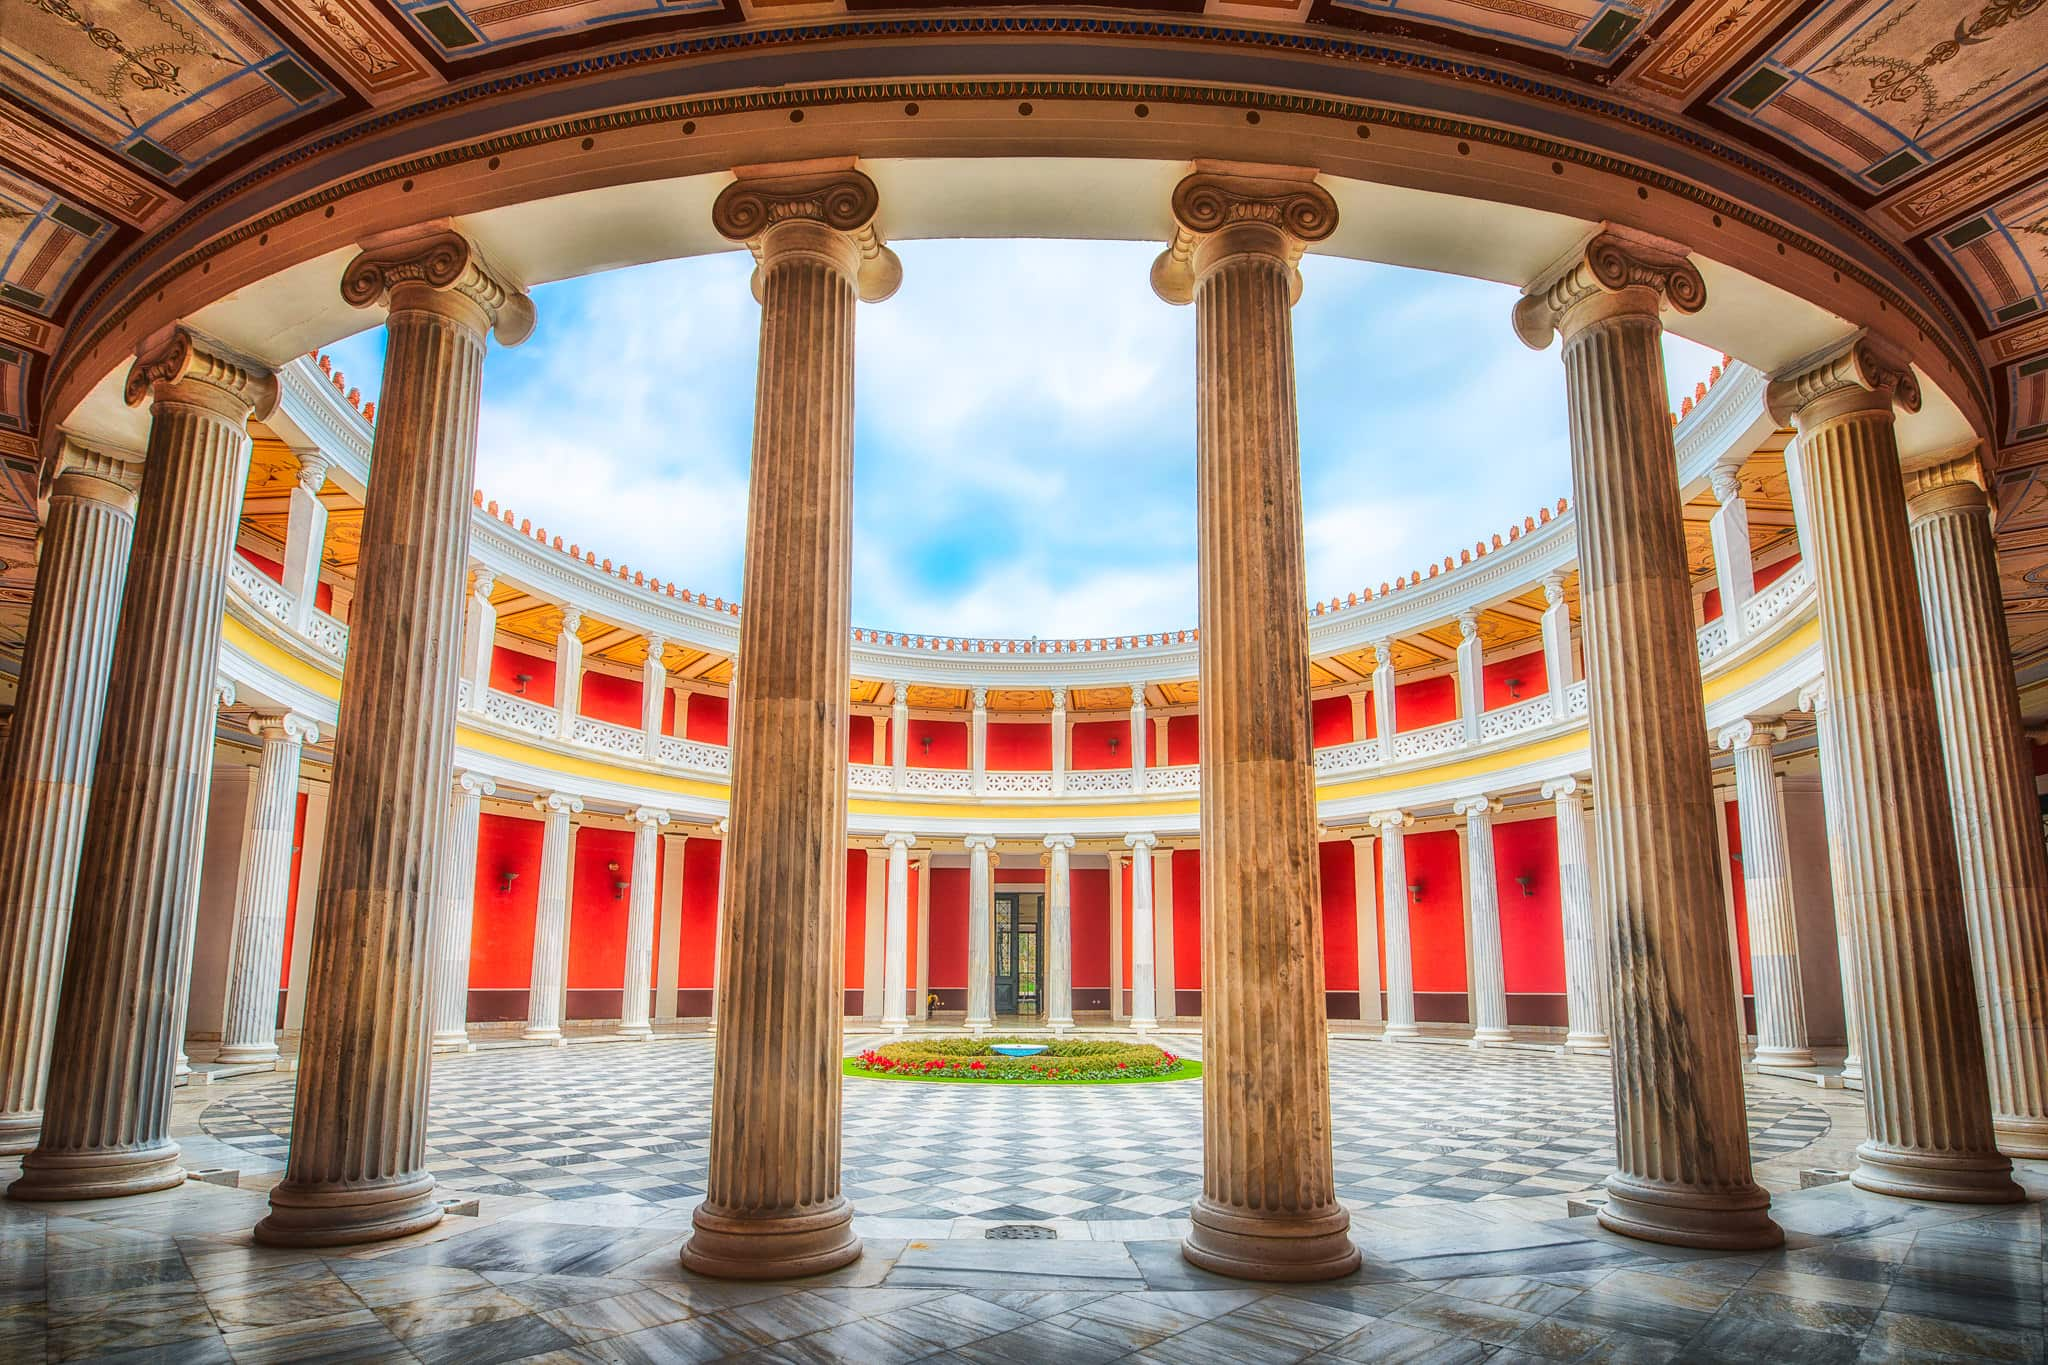 Picture from Athens Greece, showing the impressive symmetry of the atrium at the Zappeion Exhibition Hall.